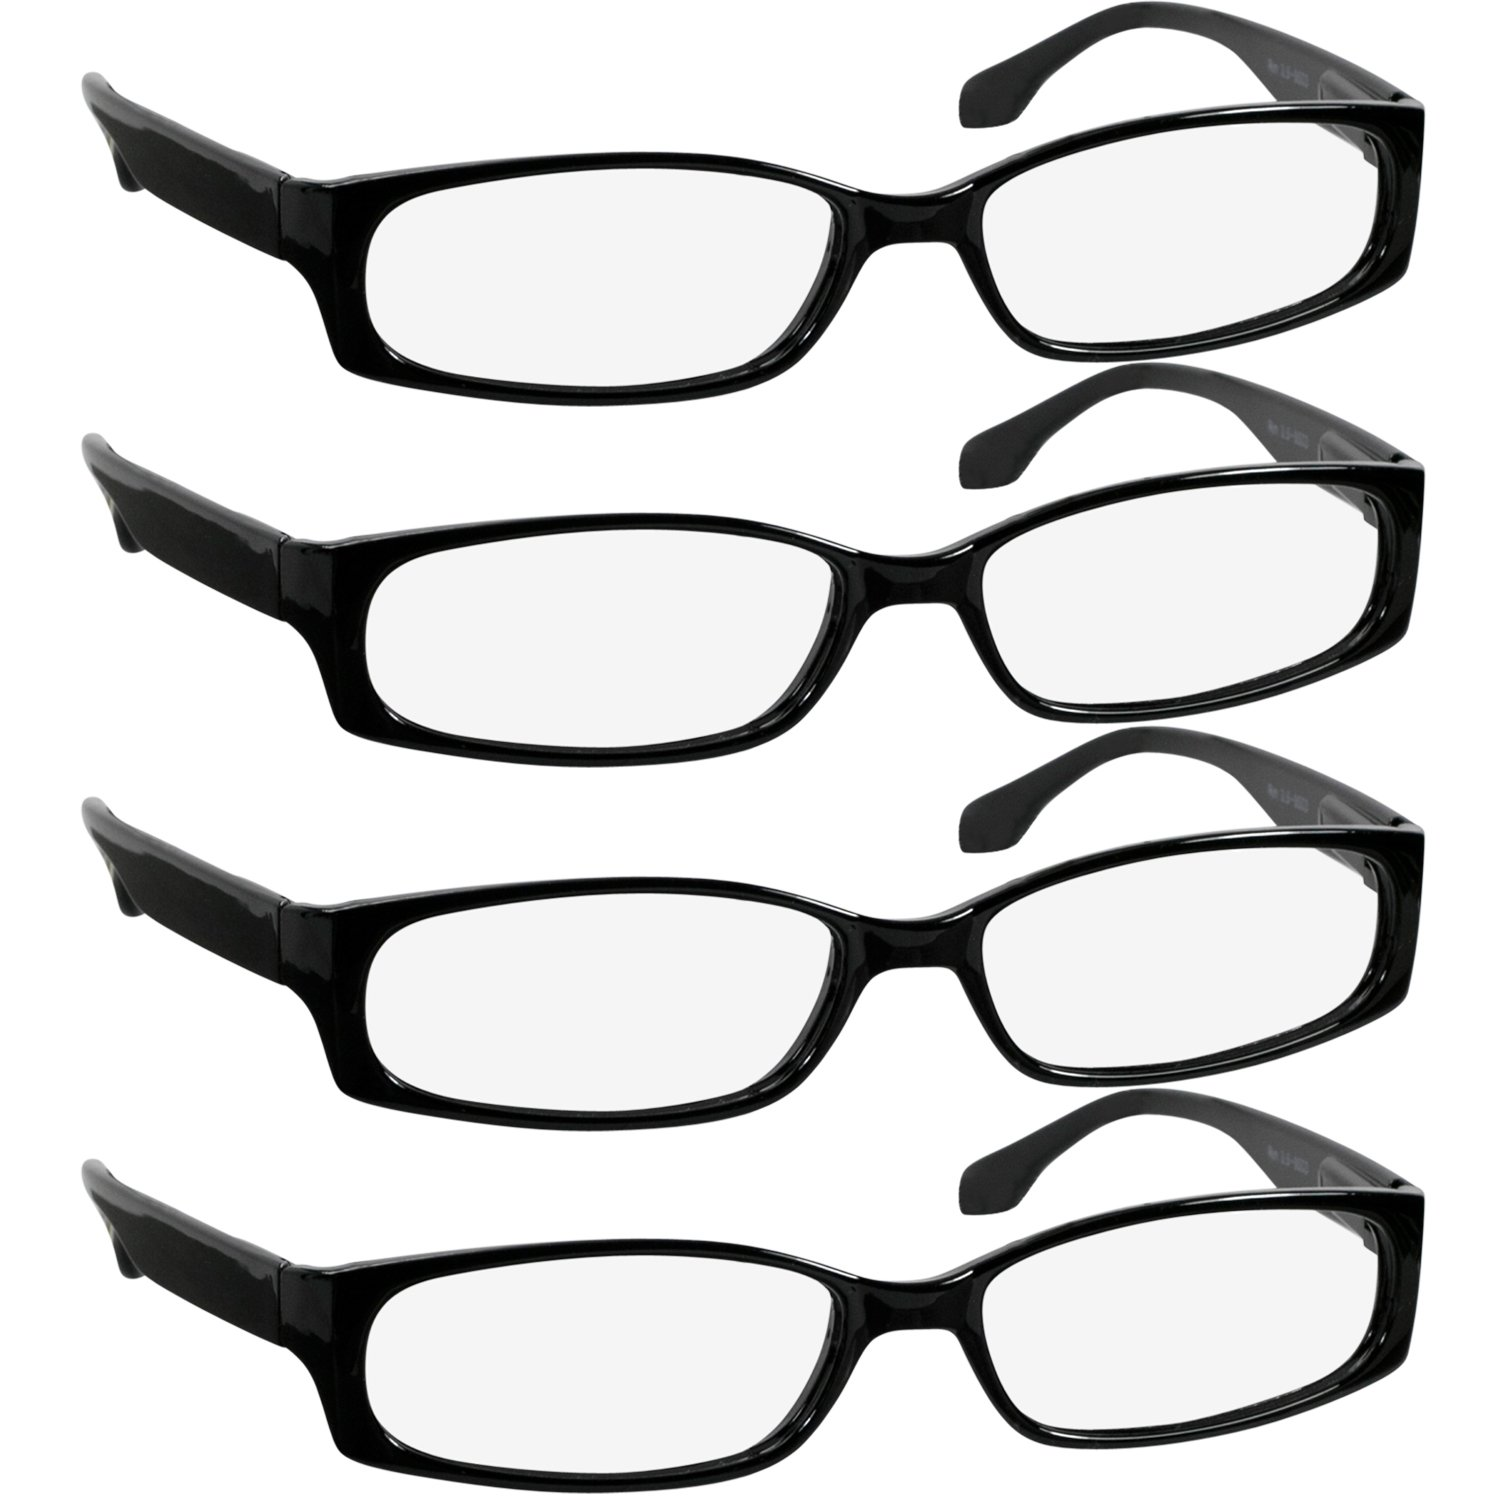 Reading Glasses 1.0 Best 4 Pack Black Readers for Men and Women Always Have a Stylish Look and Crystal Clear Vision When You Need It! Comfort Spring Arms & Dura-Tight Screws